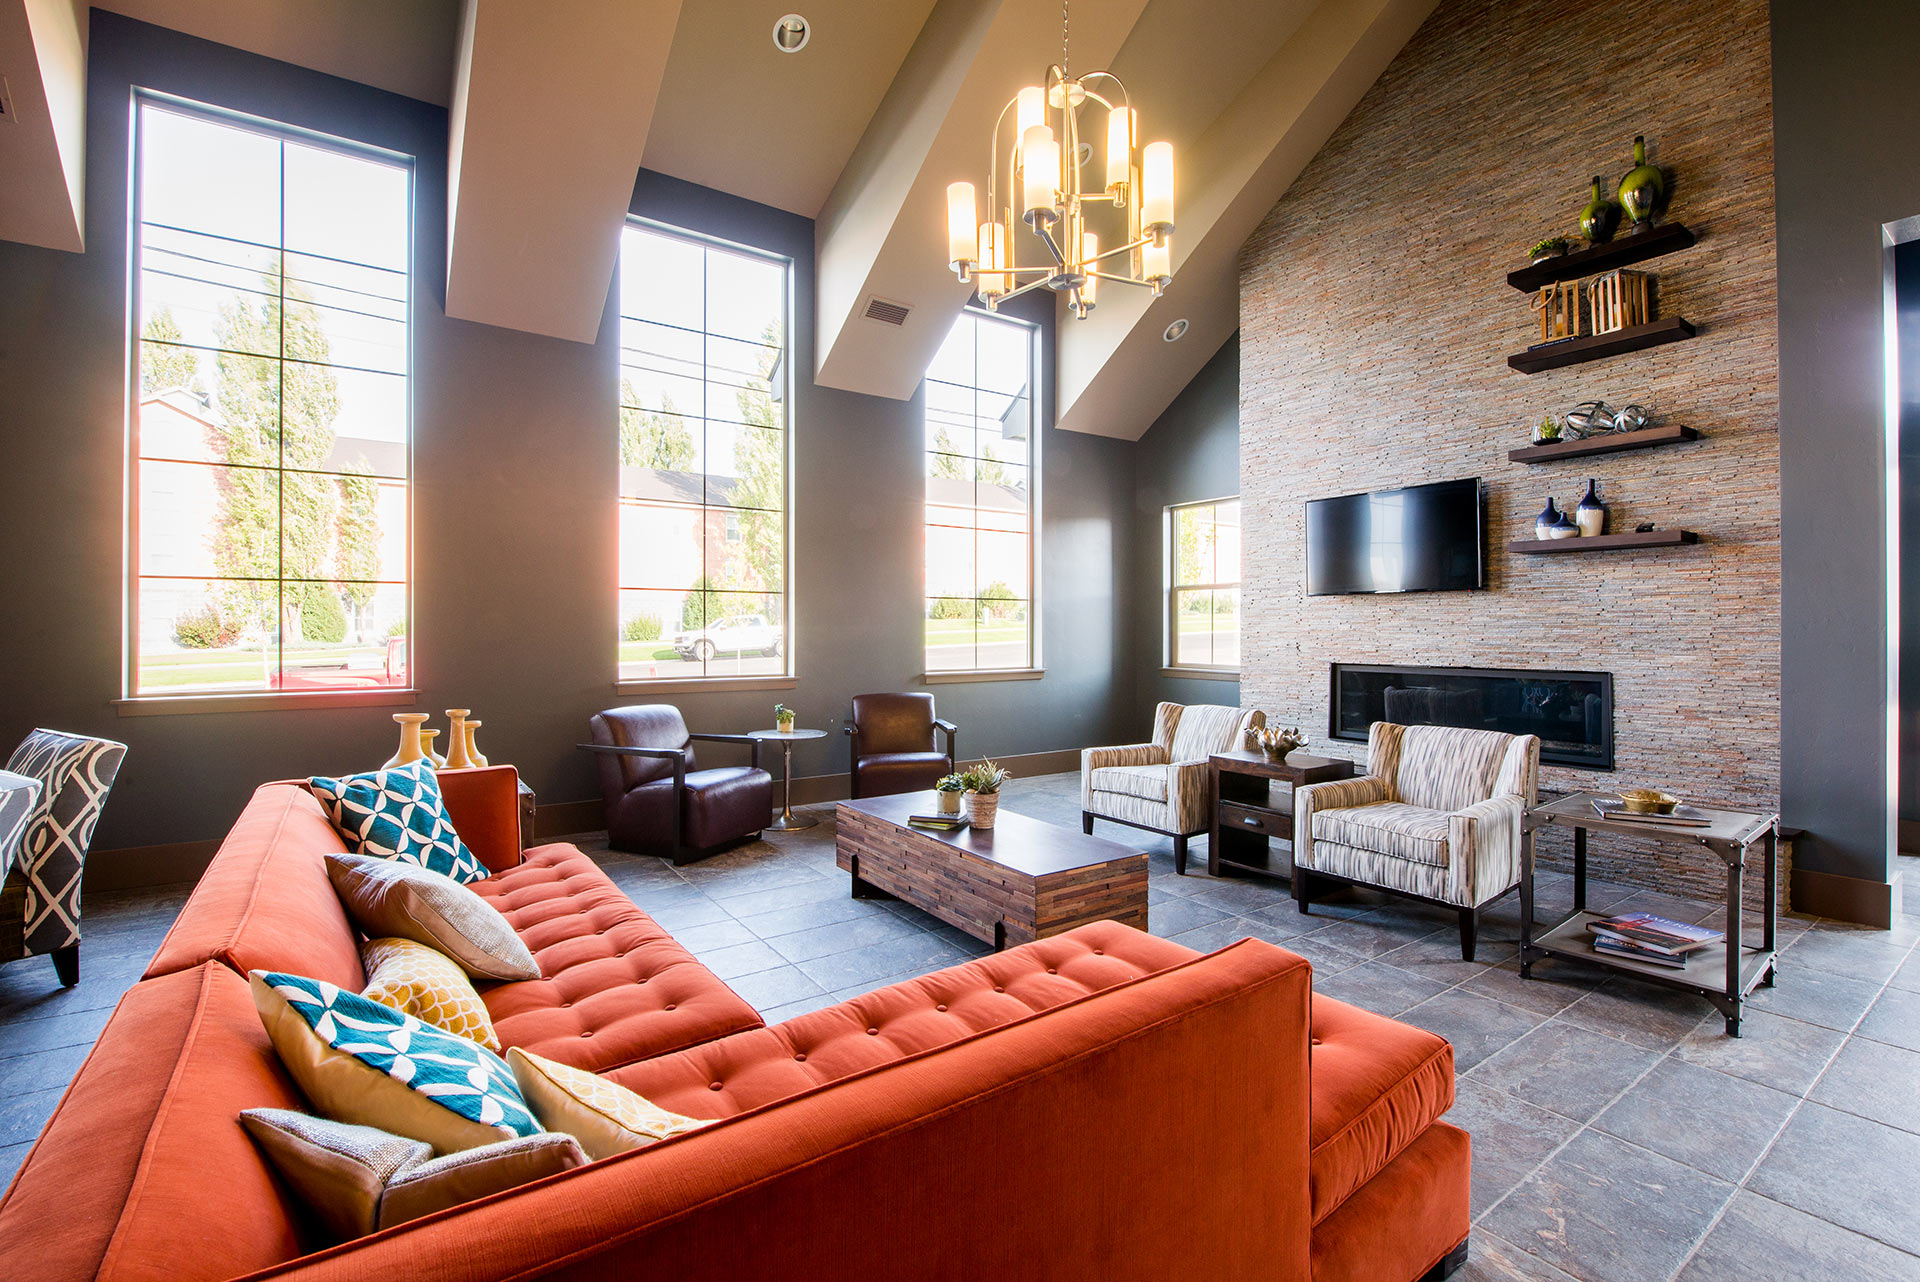 Student Housing Interior Design Trends   HPA Design Group HPA Design Group Mountain Lofts student housing interior